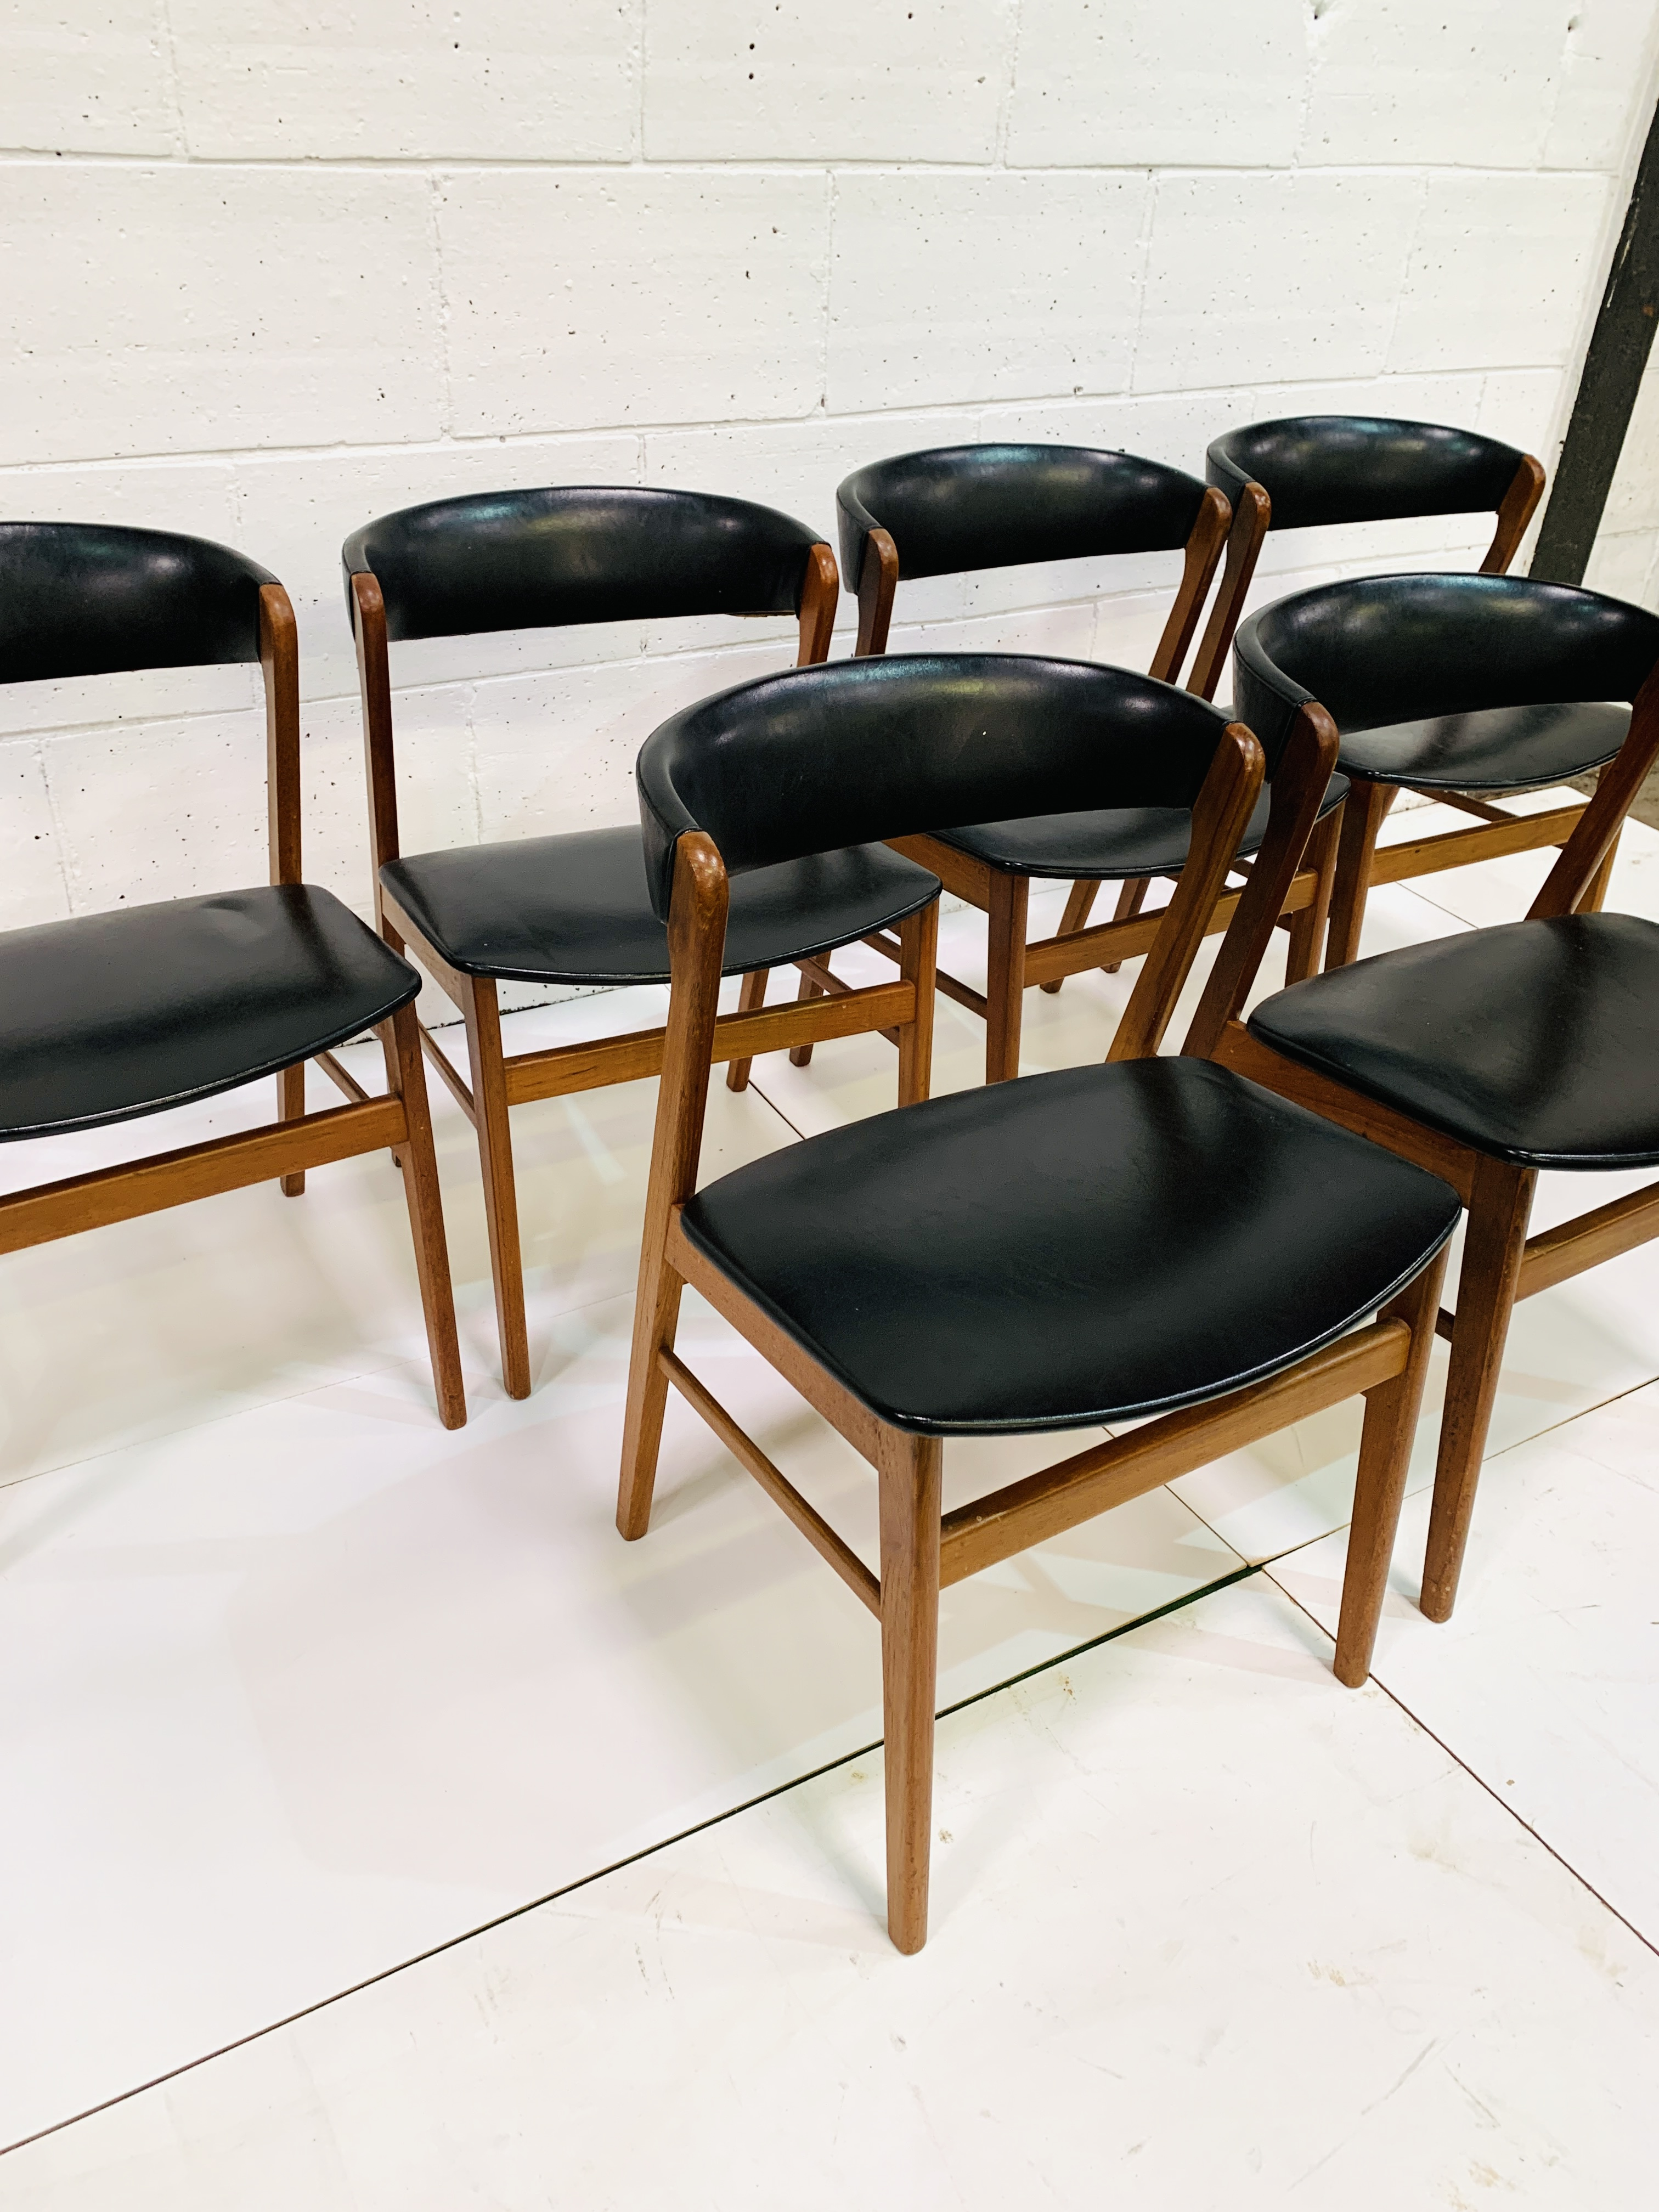 Six 1960's teak framed chairs - Image 2 of 7